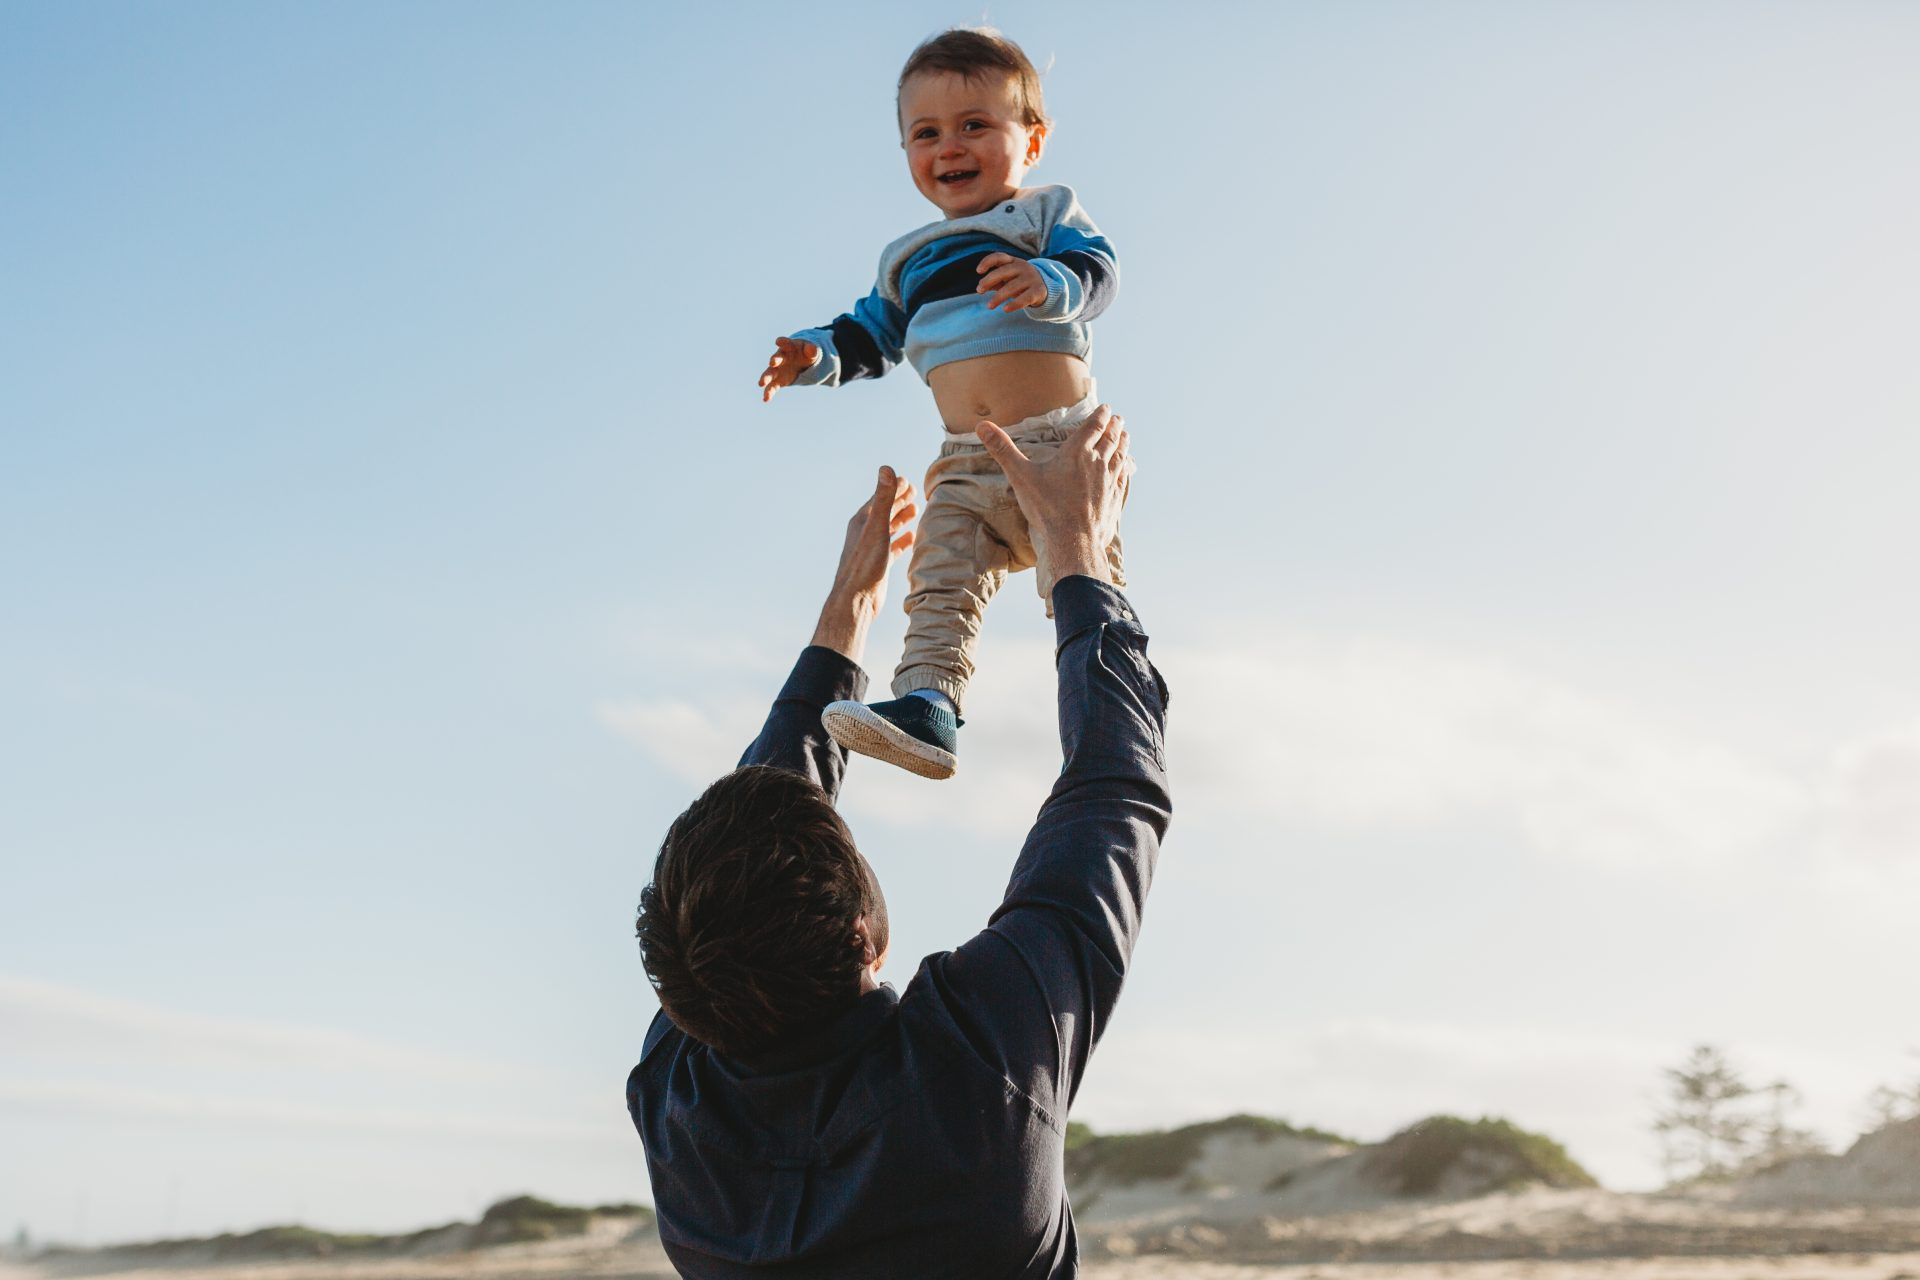 Father playfully tosses toddler into the air